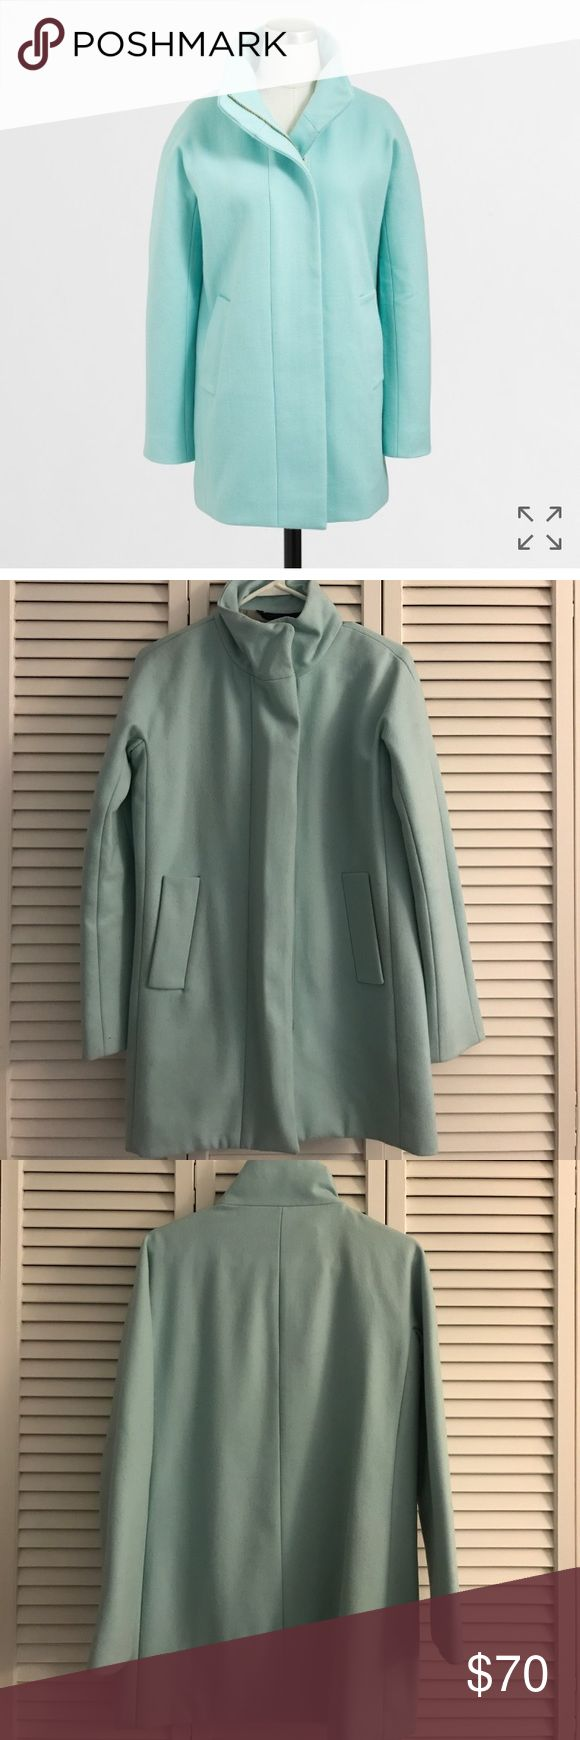 🔷 LAST CHANCE 🔷 J. Crew Factory City Coat Gorgeous mint green City Coat from J. Crew Factory. Signs of wear around the cuffs & collar is pictured. Also has some light piling due to the fabric content. Still has tons of life left & a good dry clean would definitely help! No trades, No holds No PayPal or Mercari No try ons or modeling, I will try to find a picture of an item on by request. All offers must be made through the Make an Offer button. All offers in comments will be ignored. No…